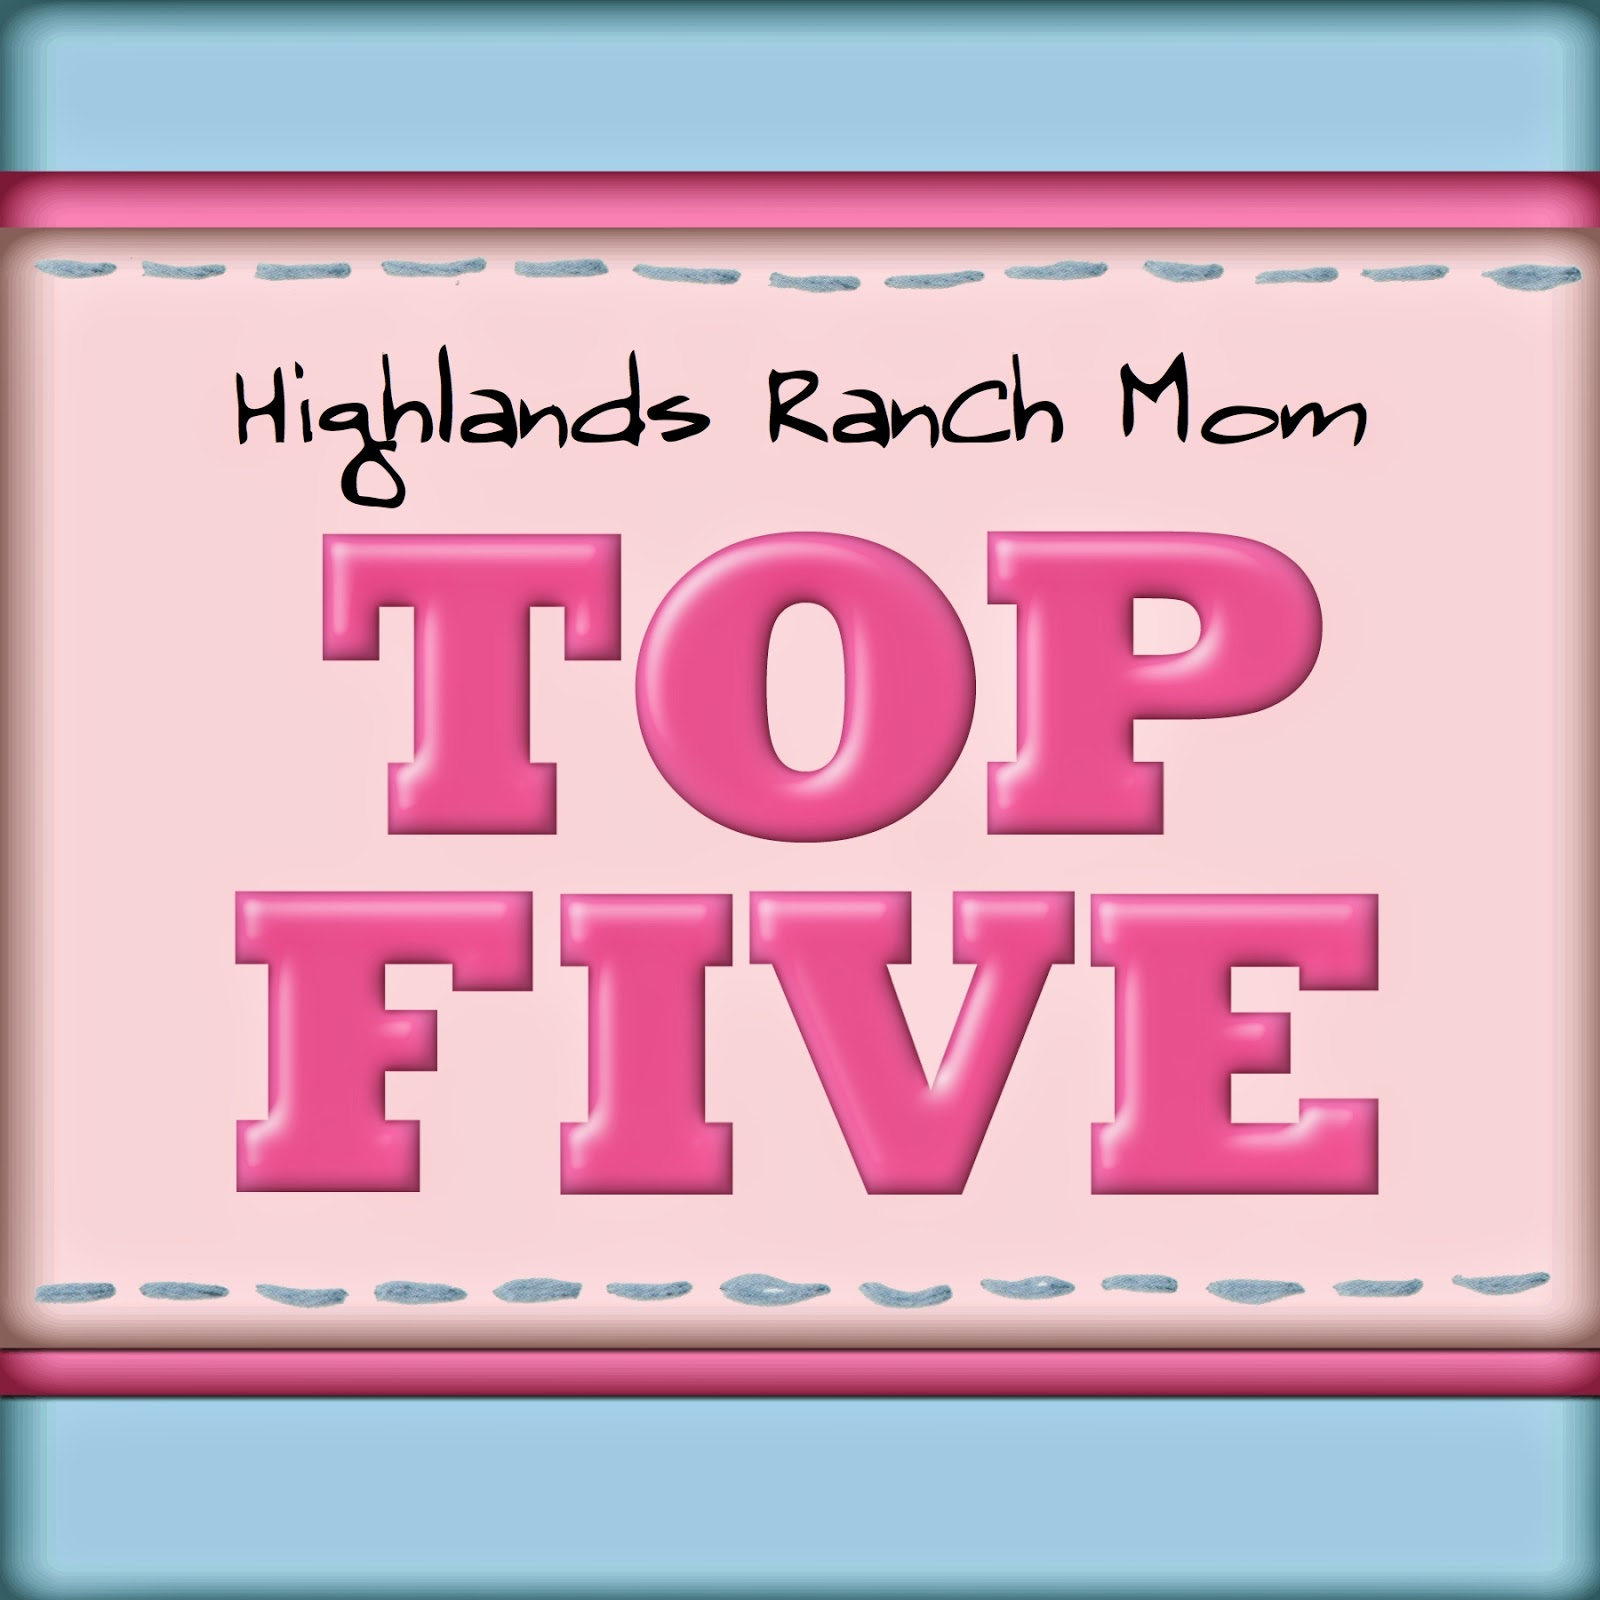 Highlands Ranch Library: Highlands Ranch Mom: Top Five